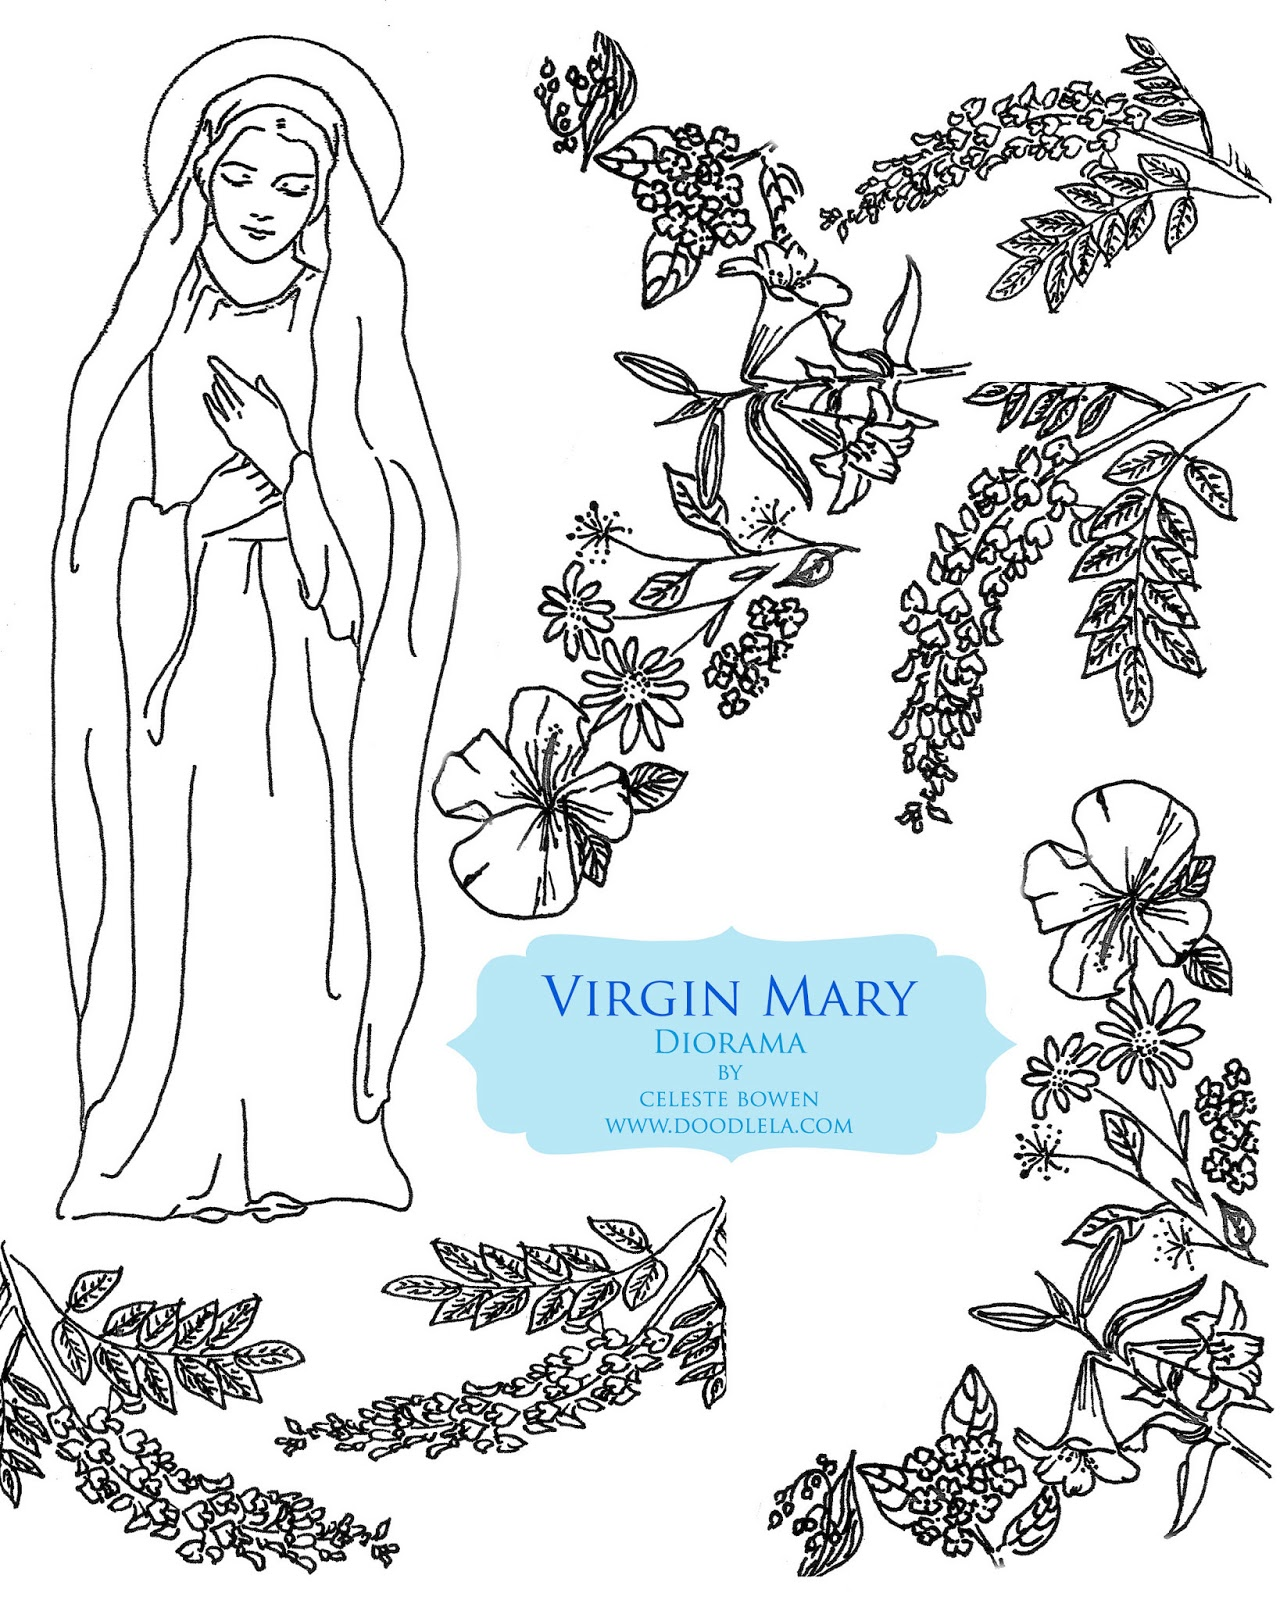 Printable coloring pages virgin mary - Next Have Your Kids Color The Images And Cut Them Out You Can Be As Detailed Or Simple As You D Like Both With Coloring And With Cutting